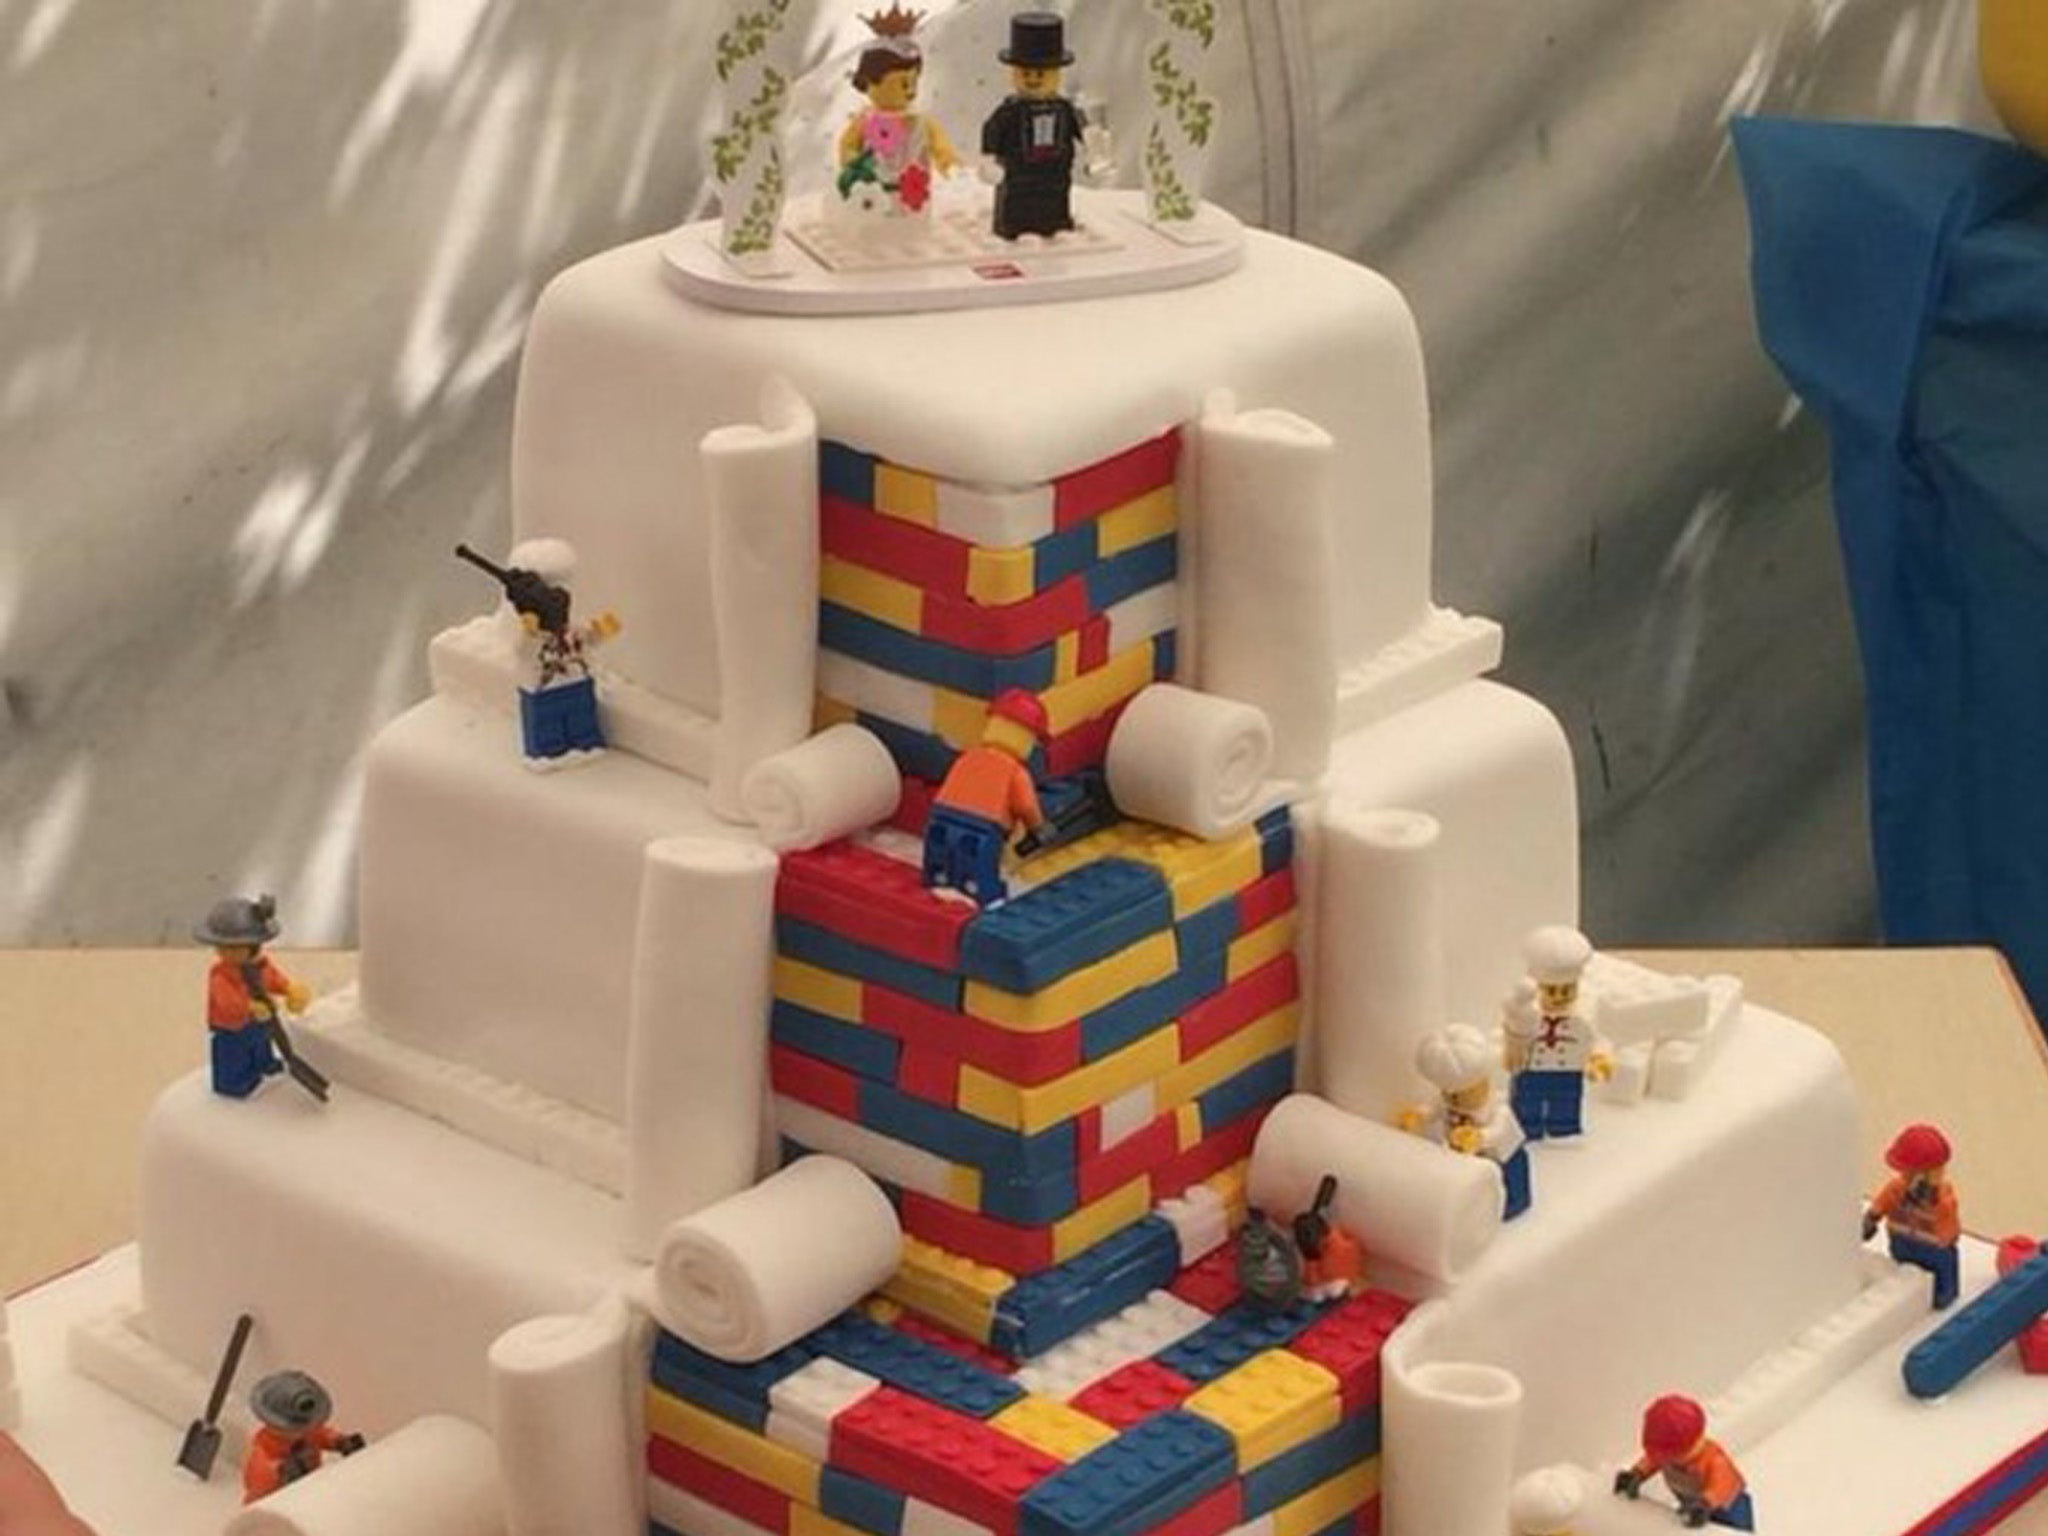 London Bakery forced to appeal for fewer requests after 'Lego Cake' goes viral